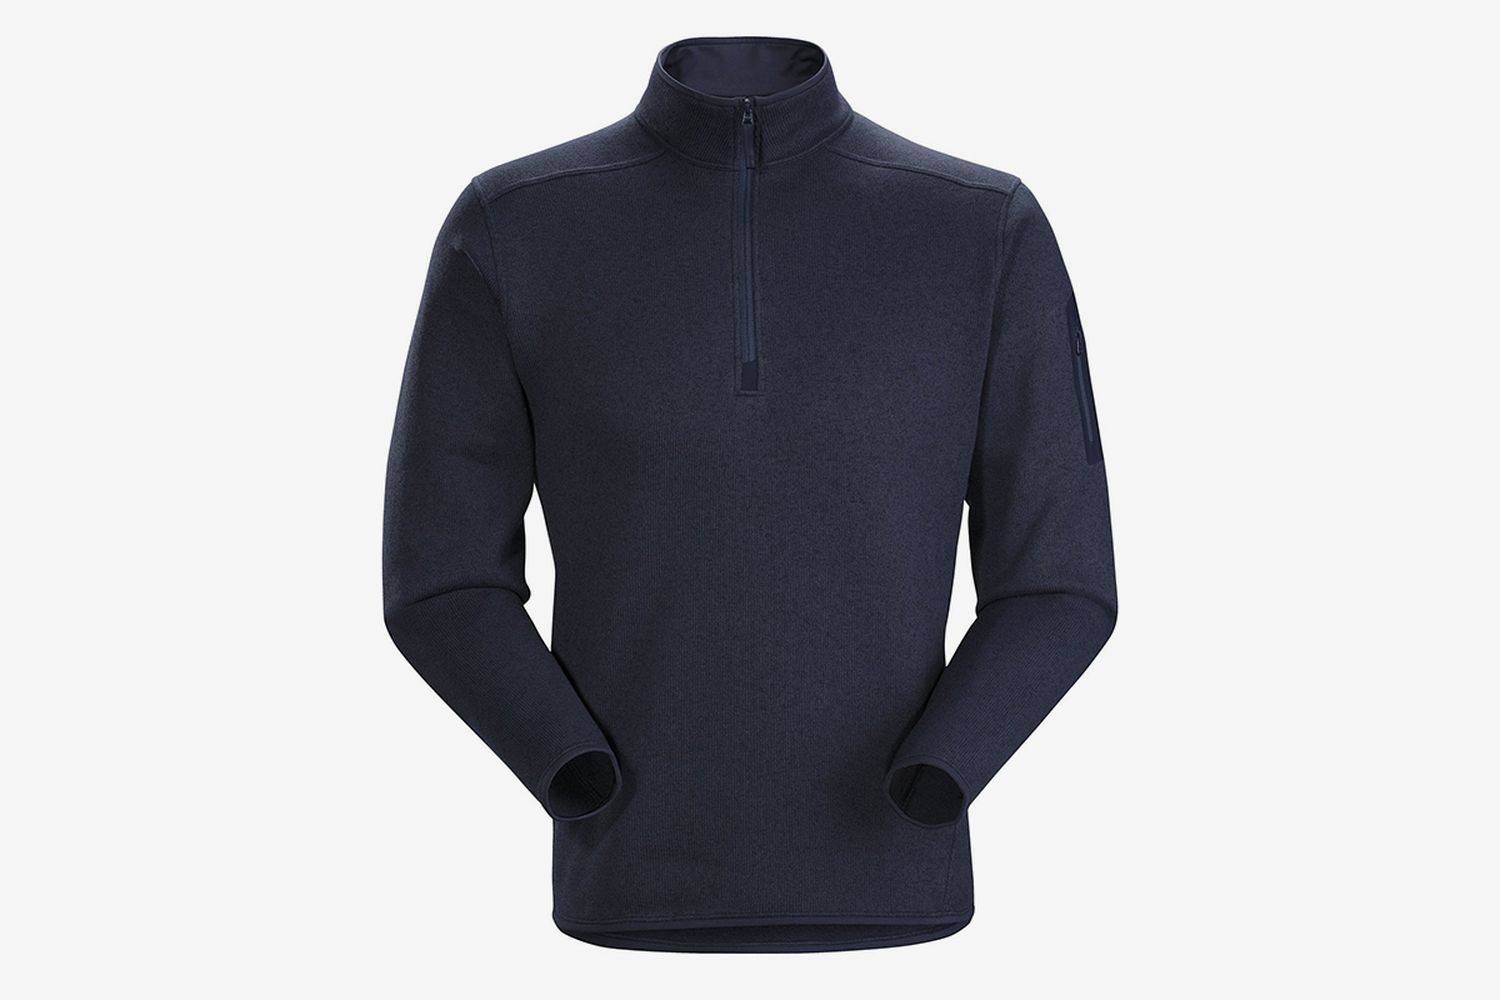 Covert 1/2 Zip Neck